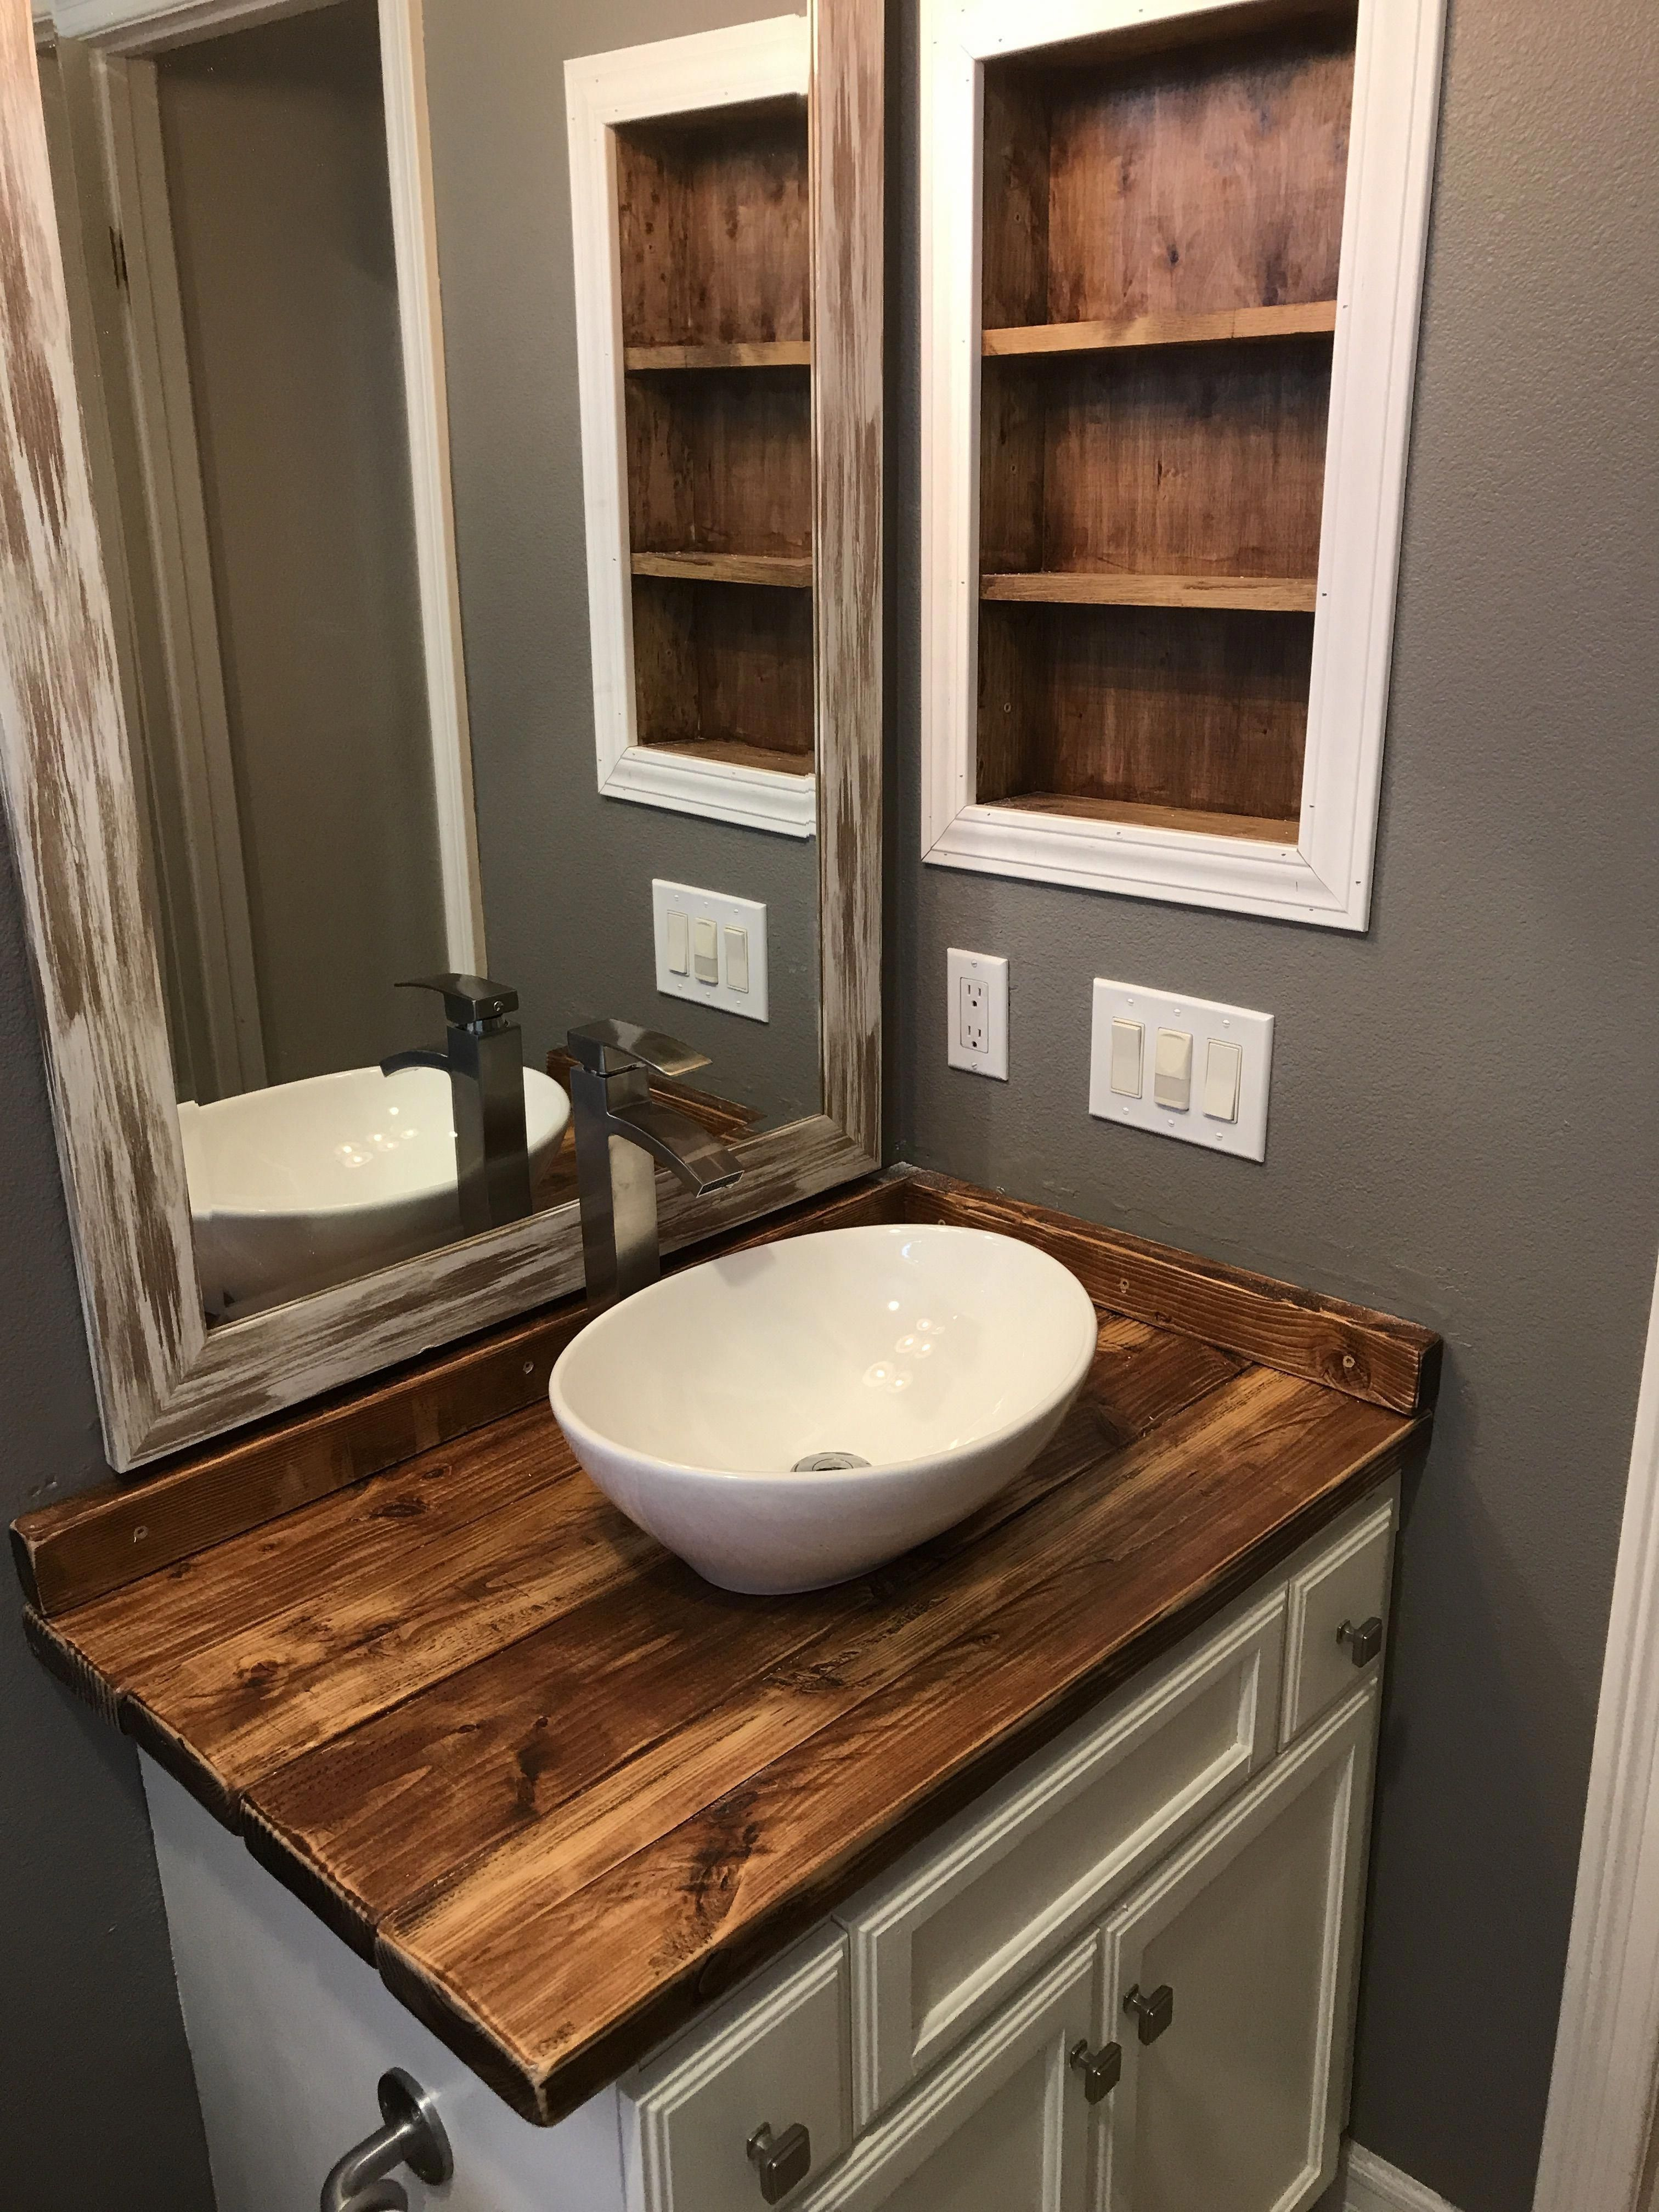 Remarkable Wood Countertop For Bathroom Vanity Some Remarkable Wood Countertop For Bathroom Vanity Are Created Of Solid Wood While S In 2020 Rustic Bathroom Vanities Bathroom Styling Diy Countertops